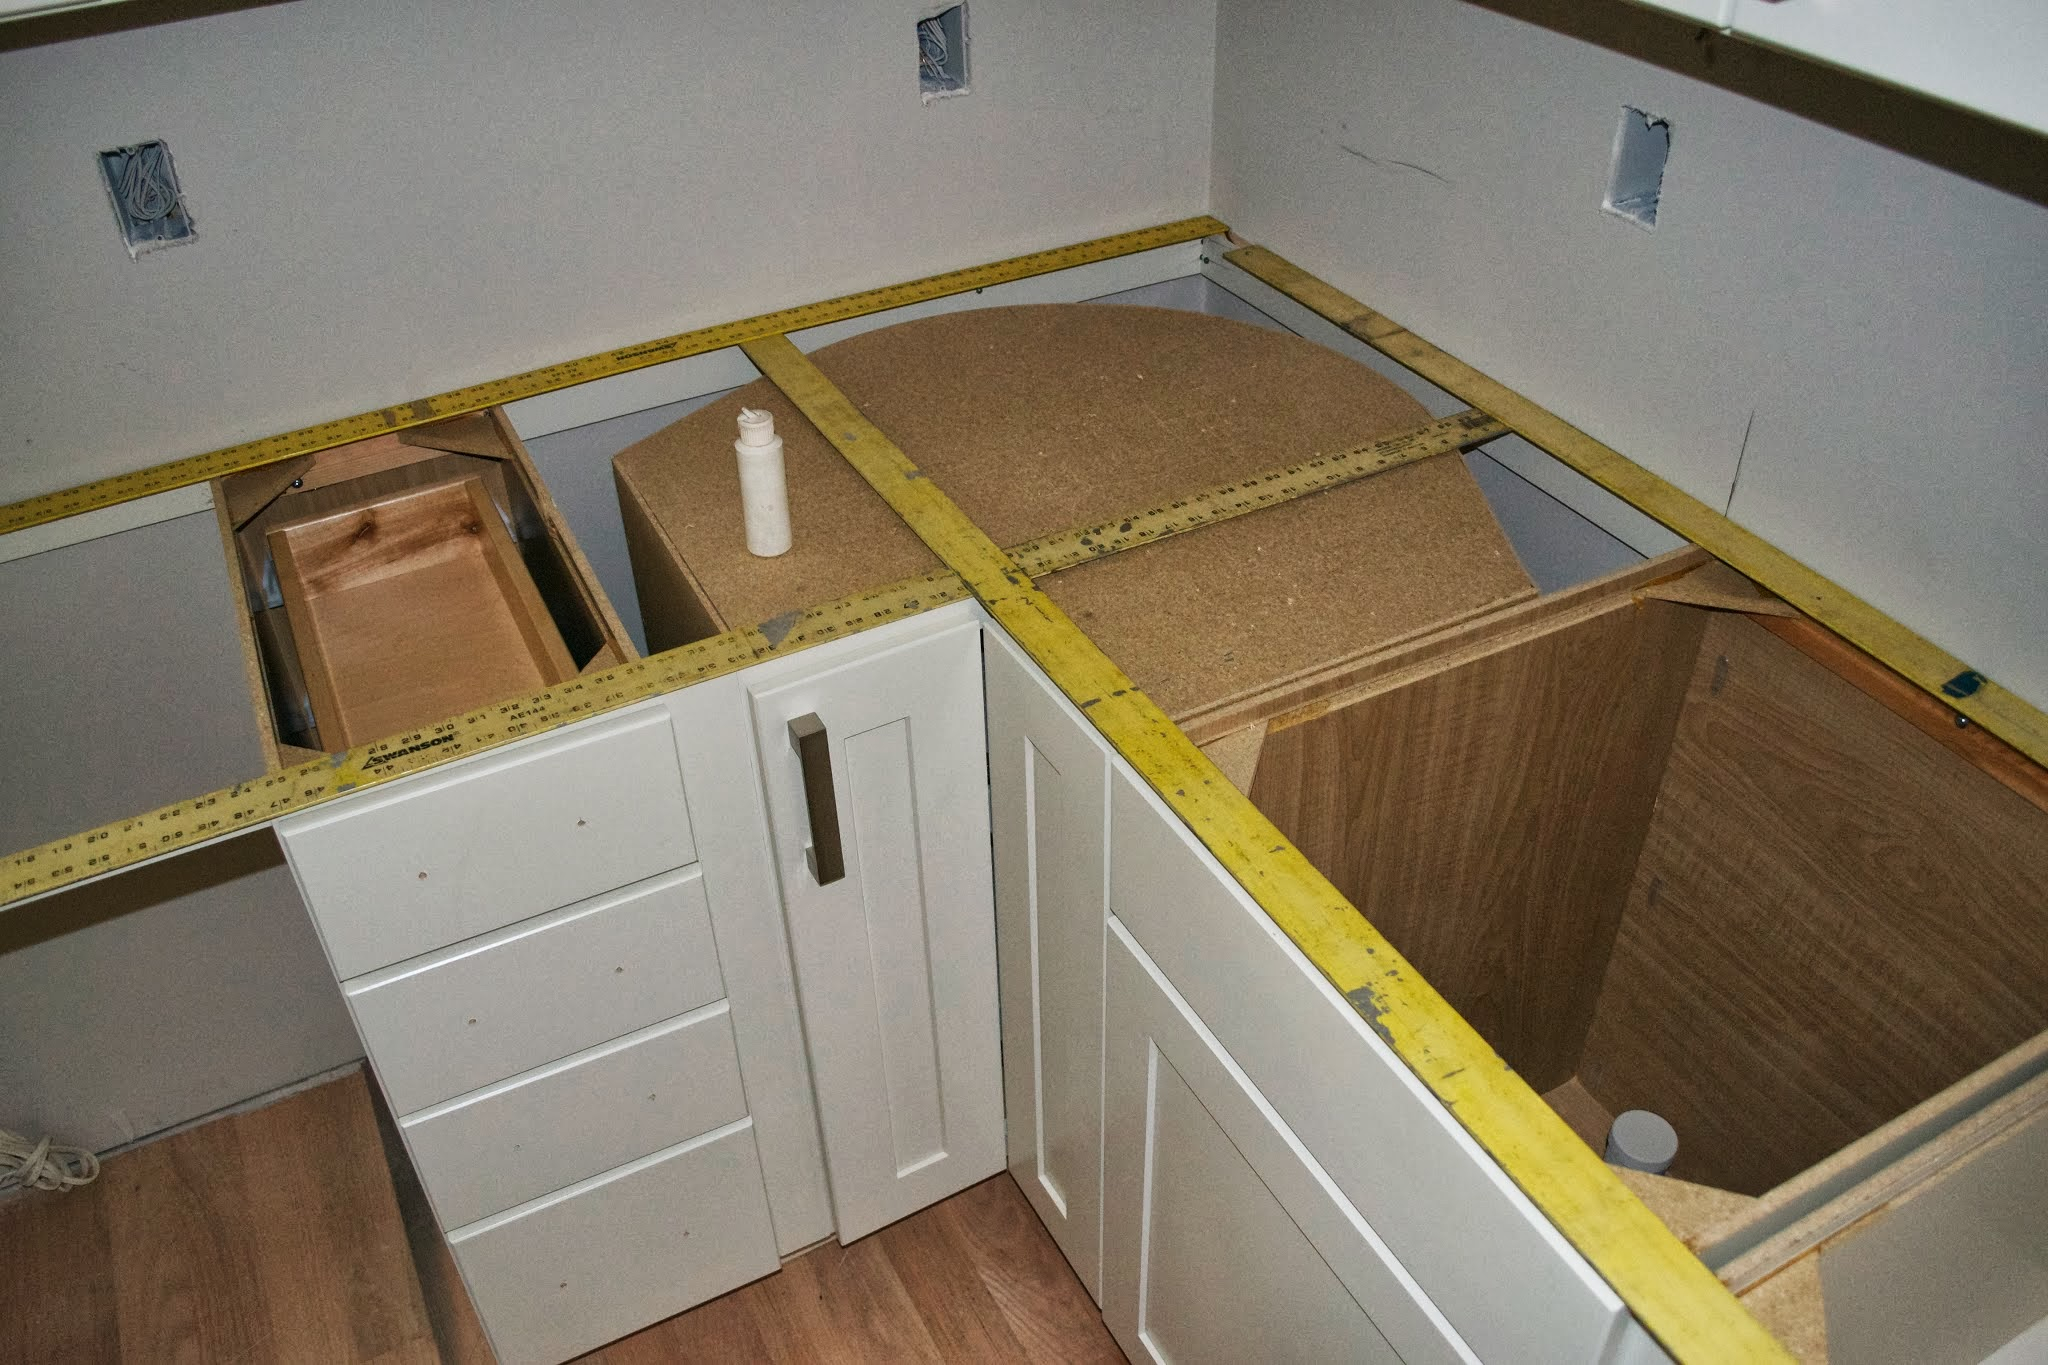 Countertop Template Material : Before beginning your countertop template, make sure all cabinets are ...